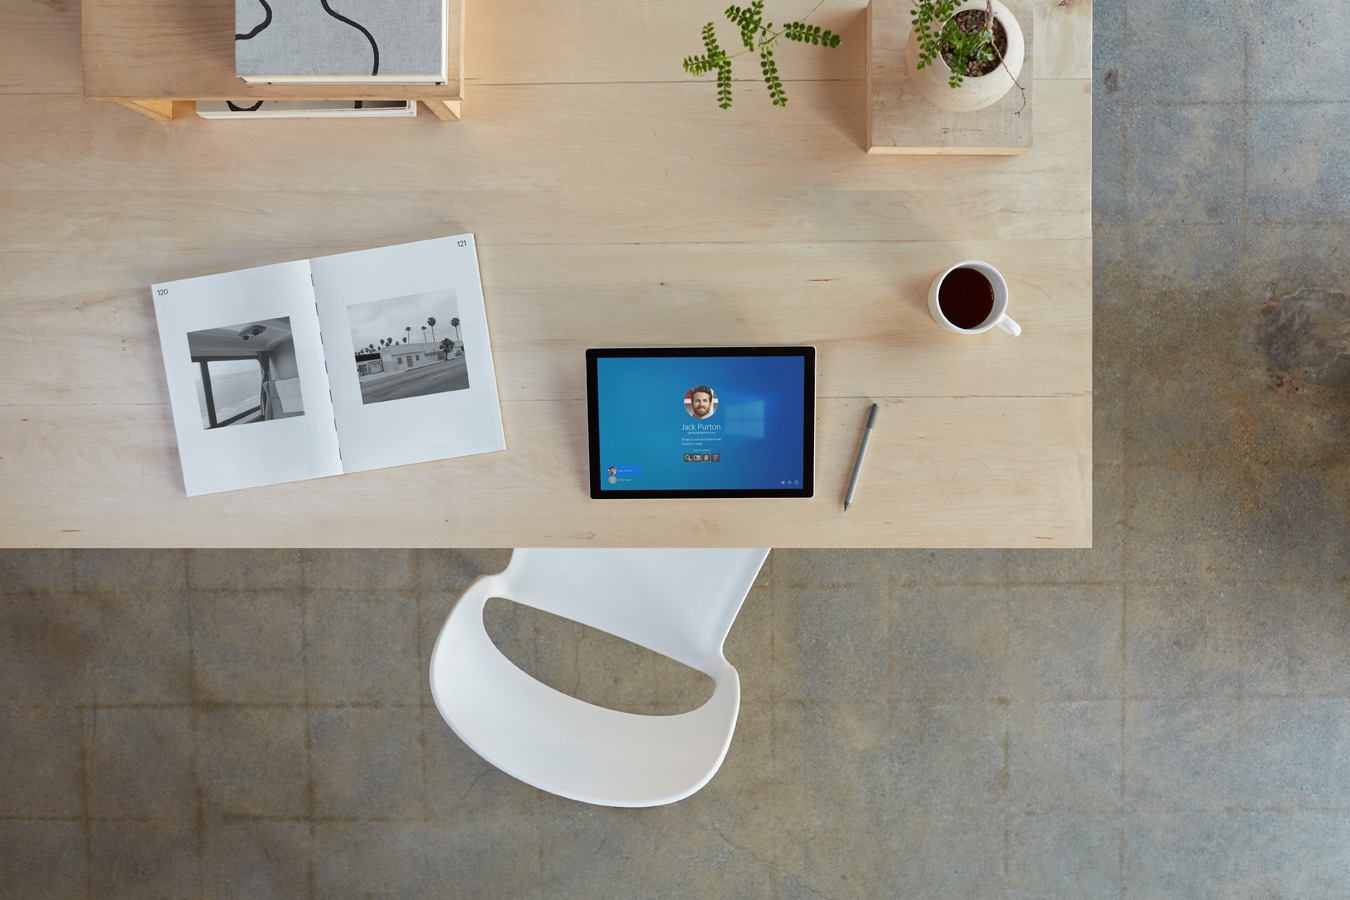 A top down view of a Surface Pro 7+ device on a home office desk surrounded by accessories